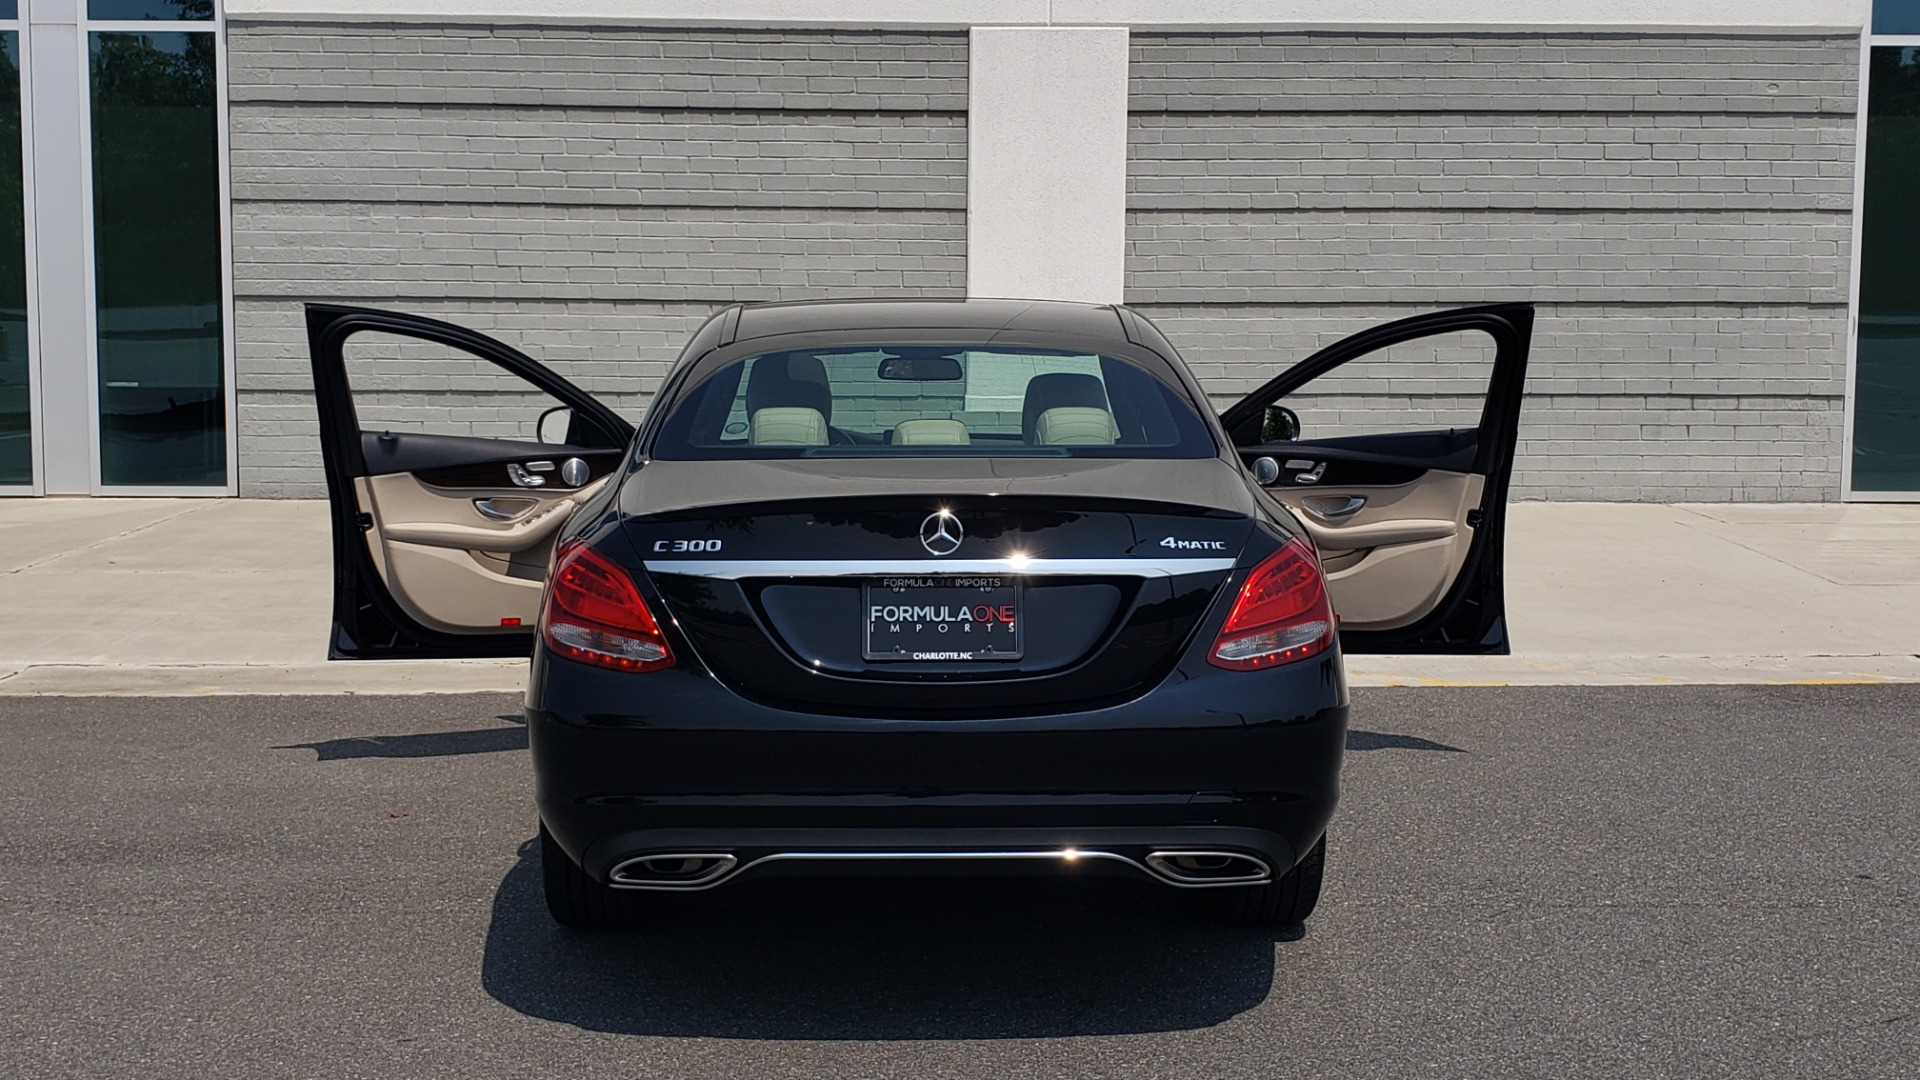 Used 2018 Mercedes-Benz C-CLASS C 300 4MATIC / PREMIUM / MULTIMEDIA / NAV / PANO-ROOF / BURMESTER for sale $30,495 at Formula Imports in Charlotte NC 28227 26